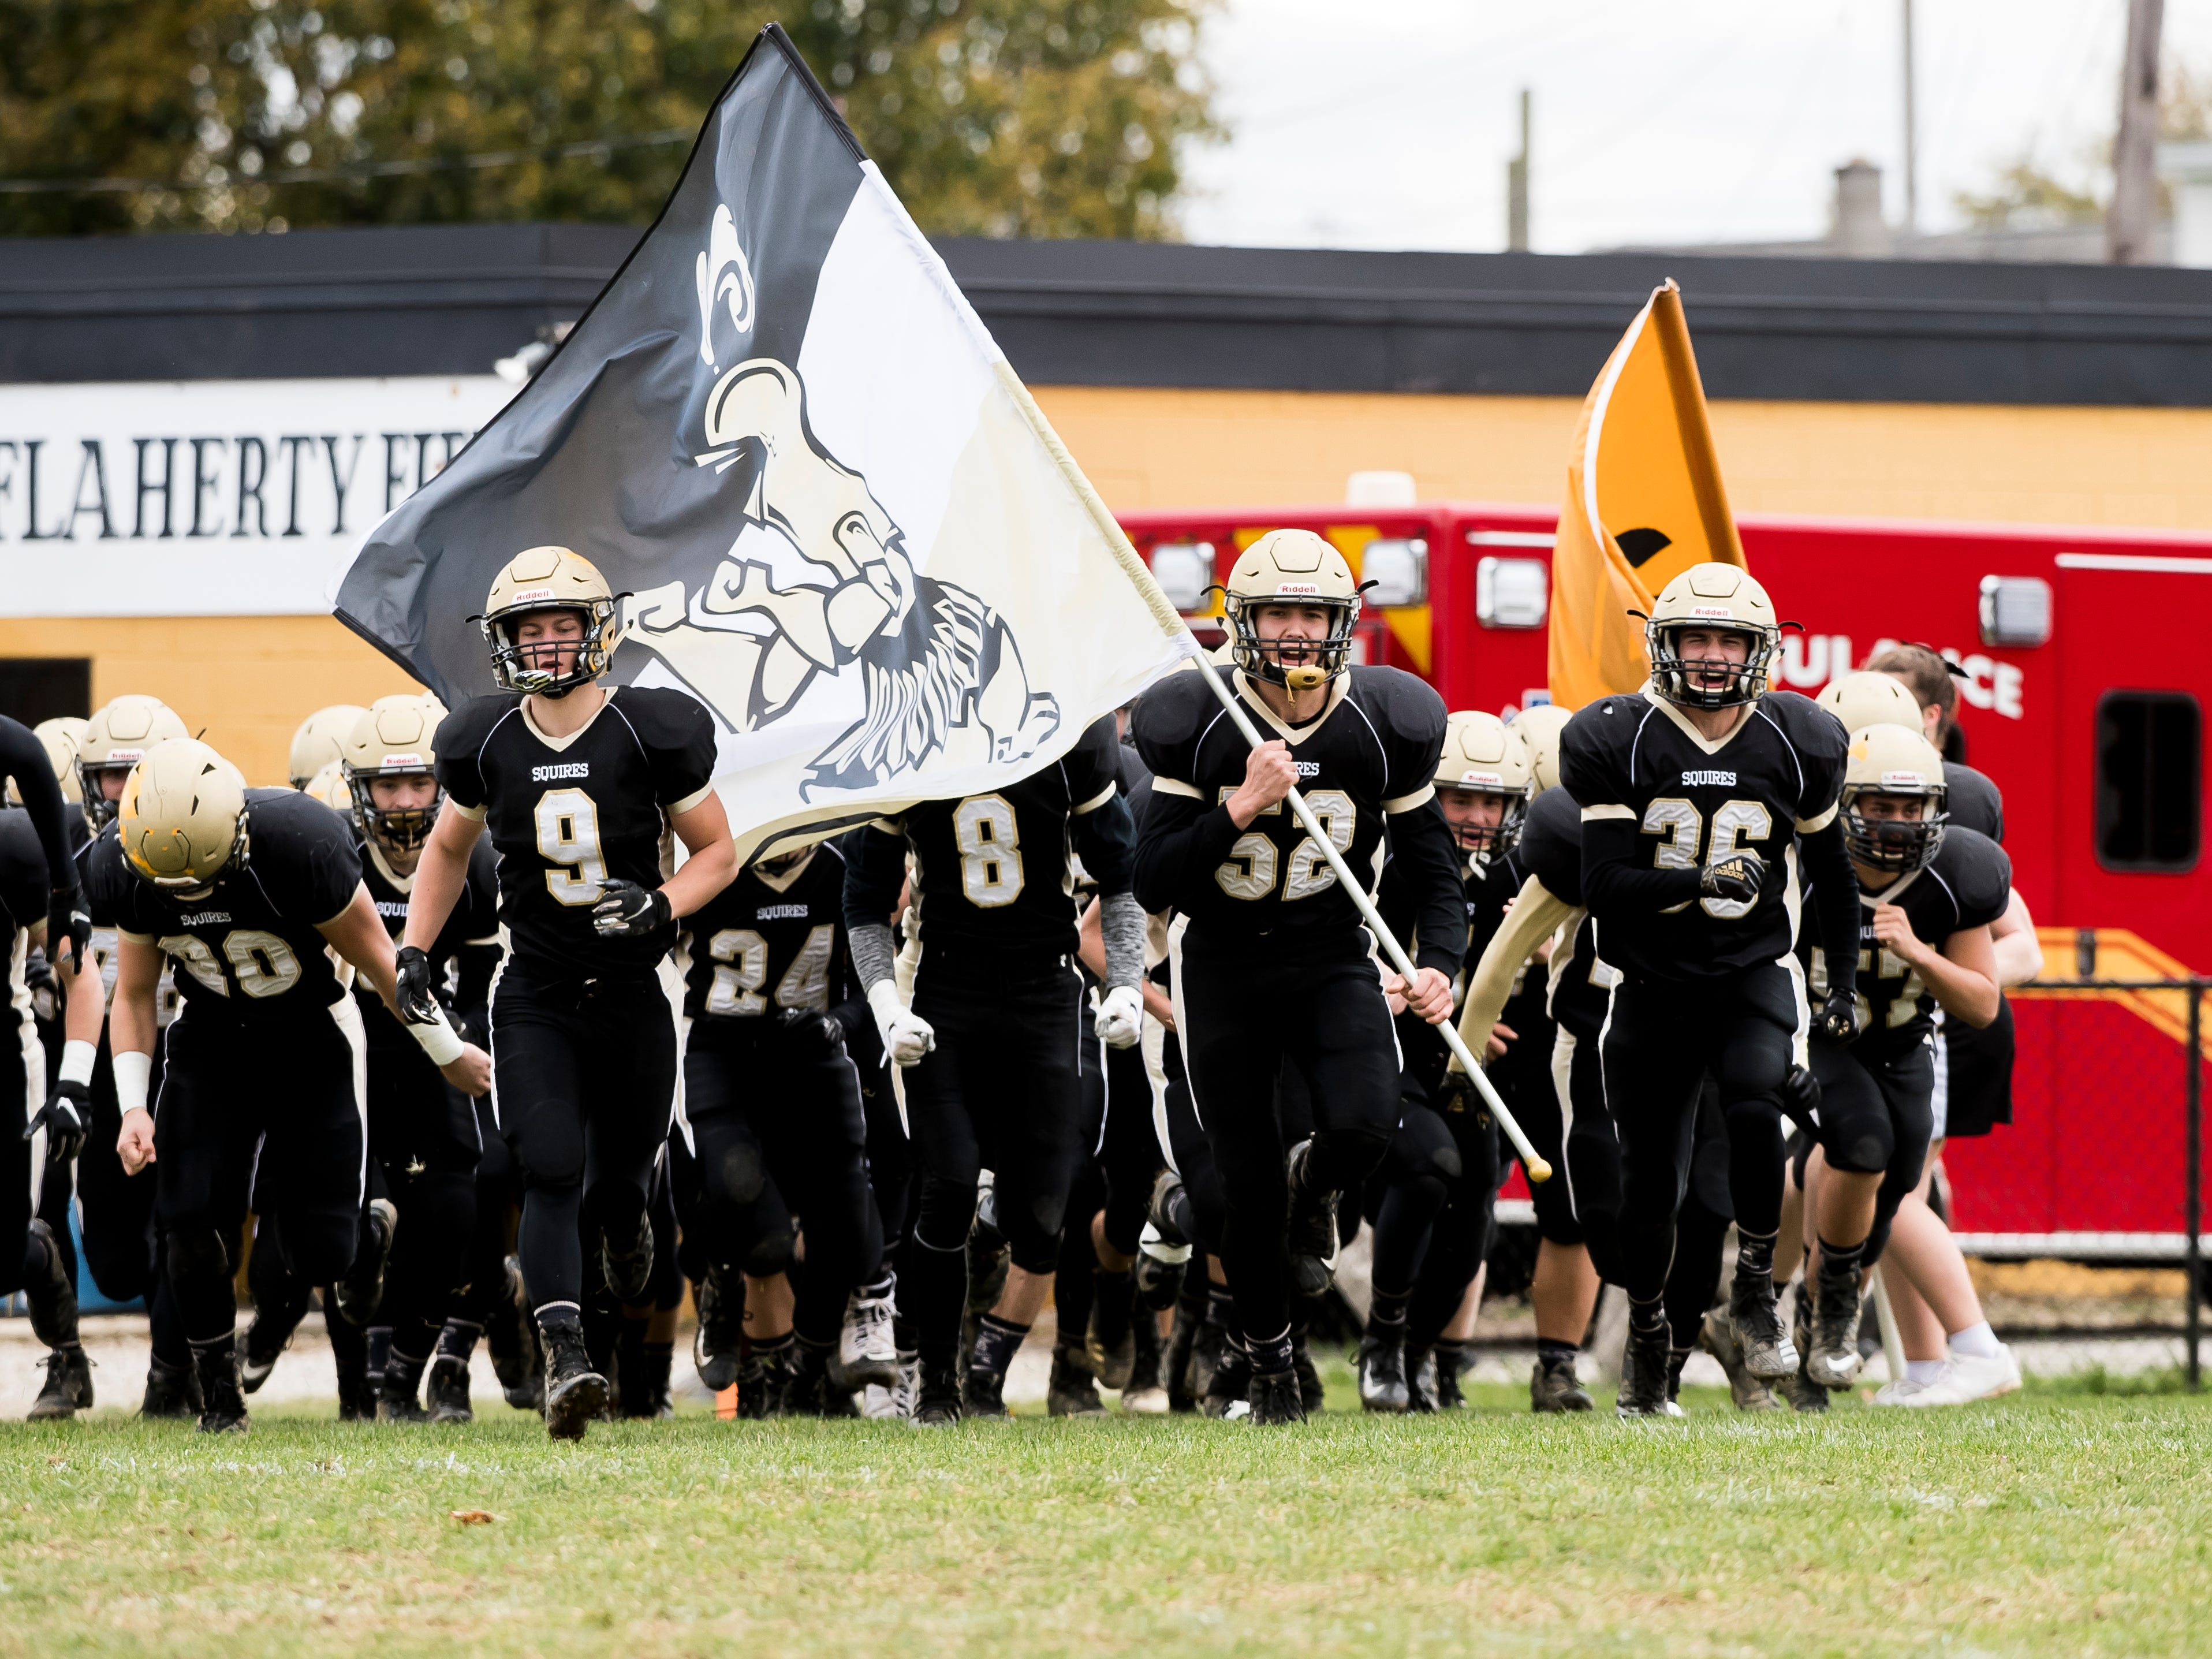 Delone Catholic's Andrew Shipley (52) leads the Squires onto J.T. Flaherty Field before a District III Class 2A semifinal game against Upper Dauphin on Saturday, November 3, 2018. The Squires won 48-23.